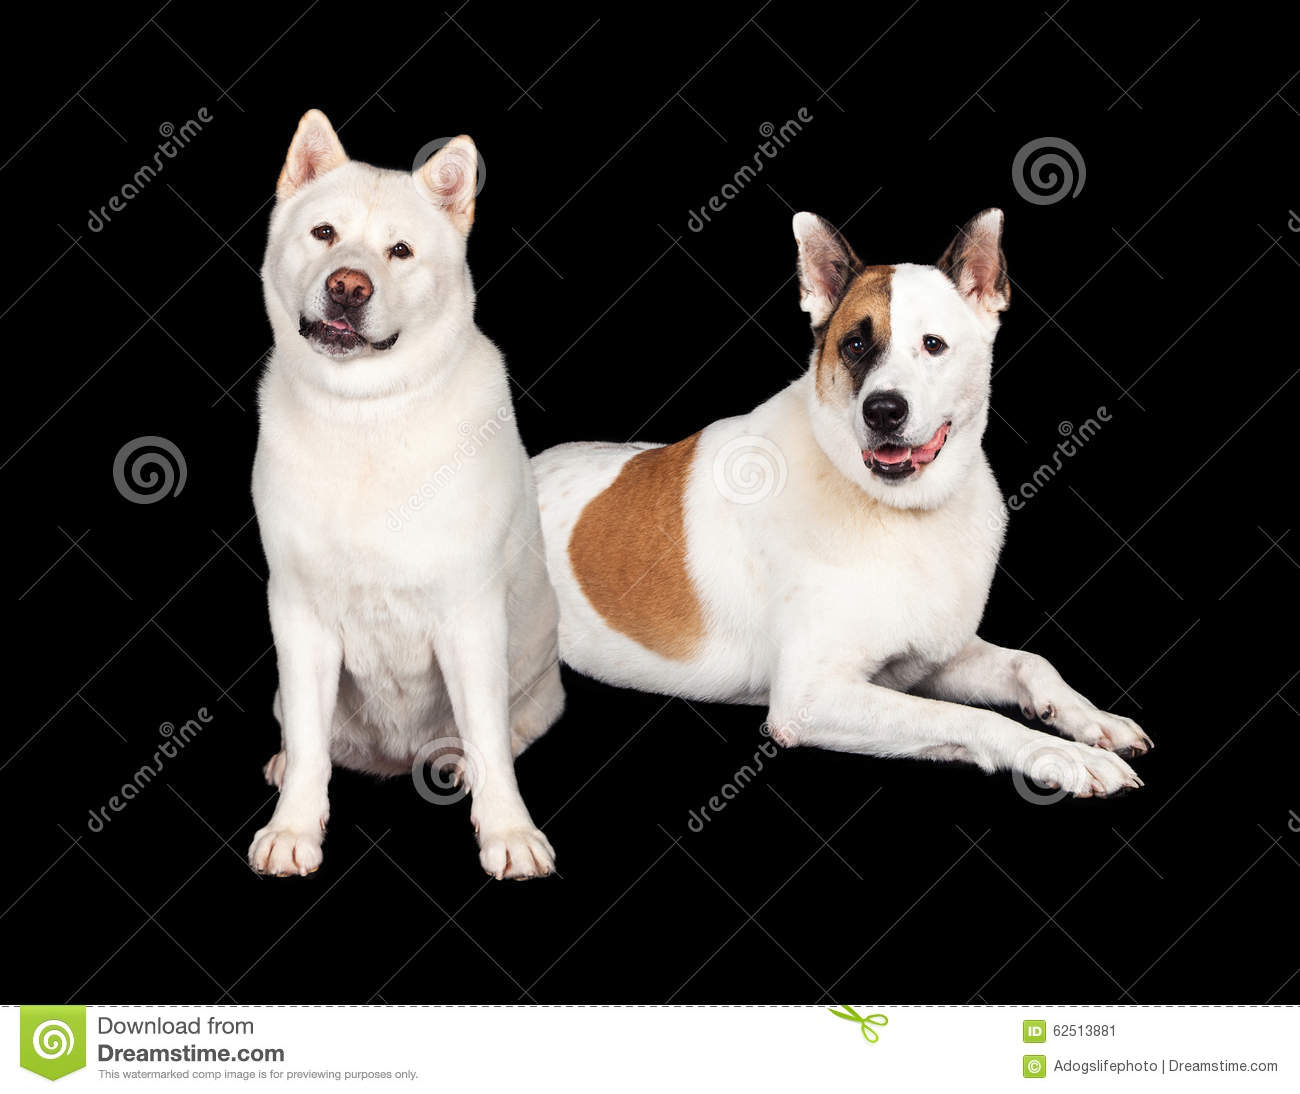 Dogs Relaxing Over Black Background Stock Photo - Image: 62513881 Relaxing Dogs